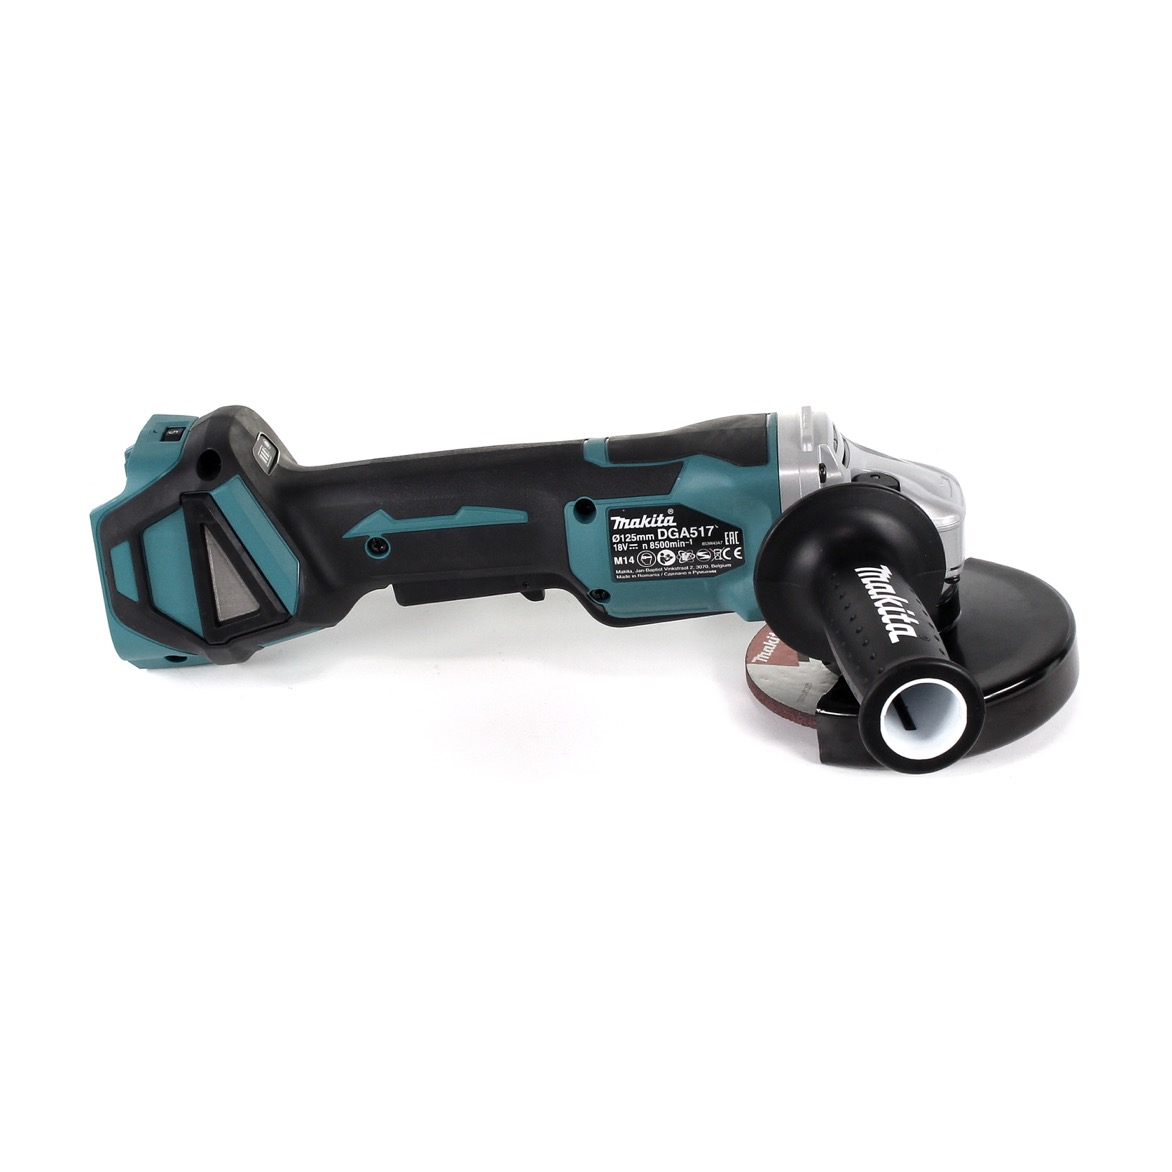 Makita Dga 517 Z Akku Winkelschleifer 18v Brushless 125 Mm Inklusive